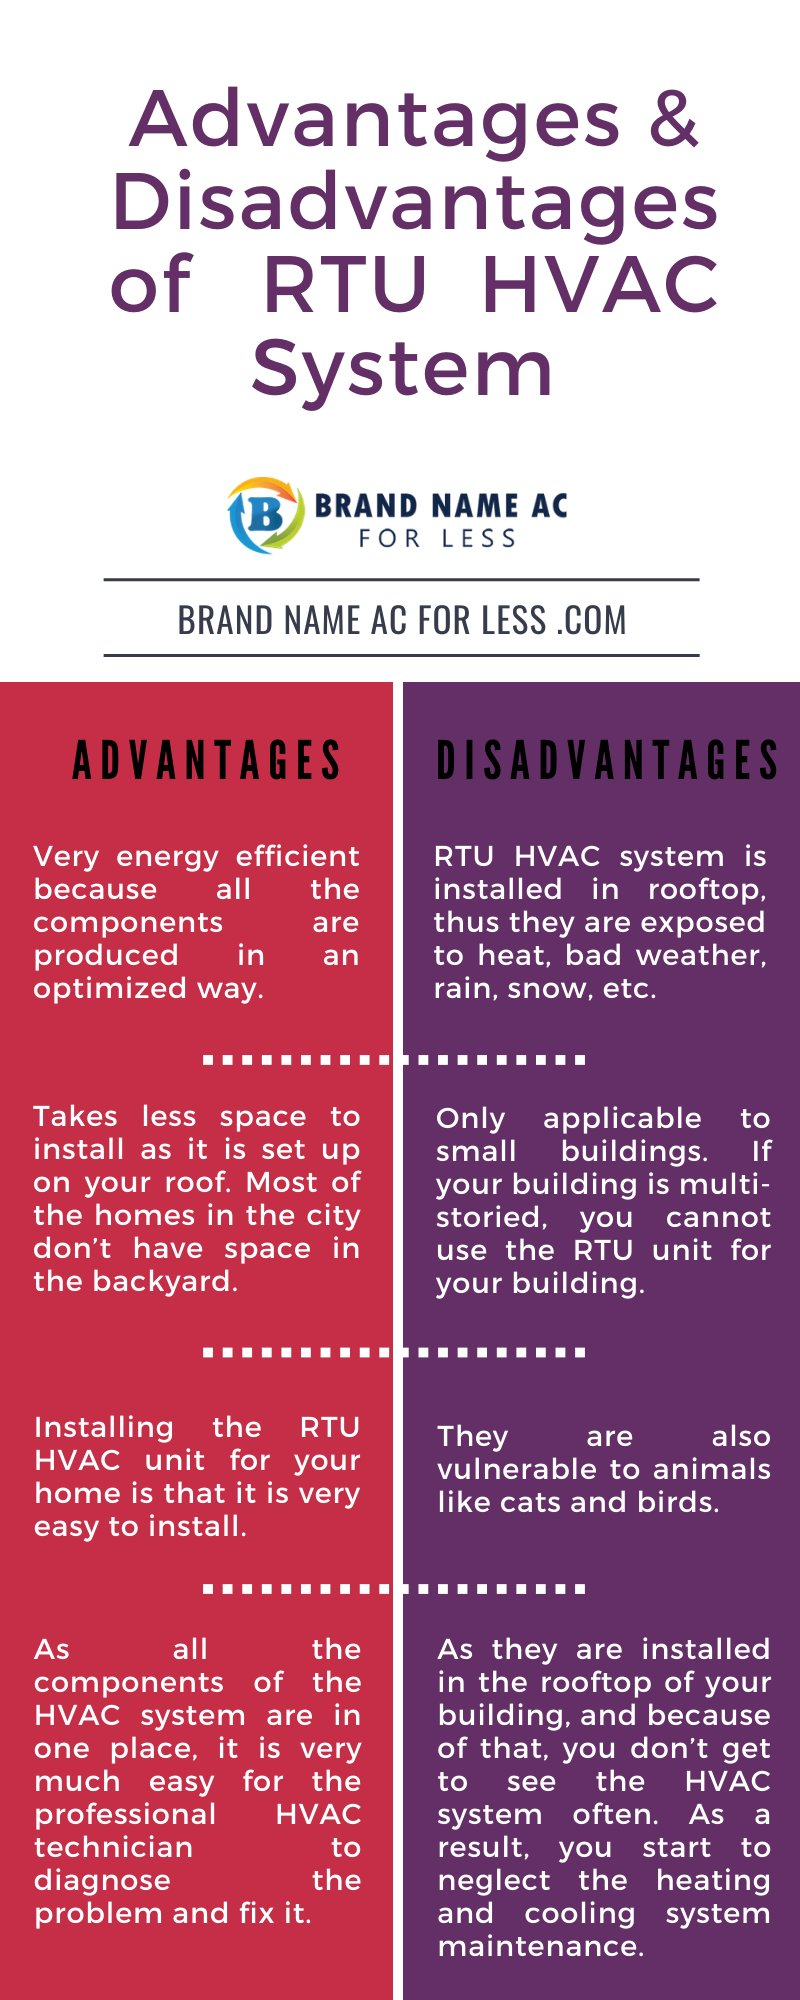 Advantages & Disadvantages of RTU HVAC System [Infographic]